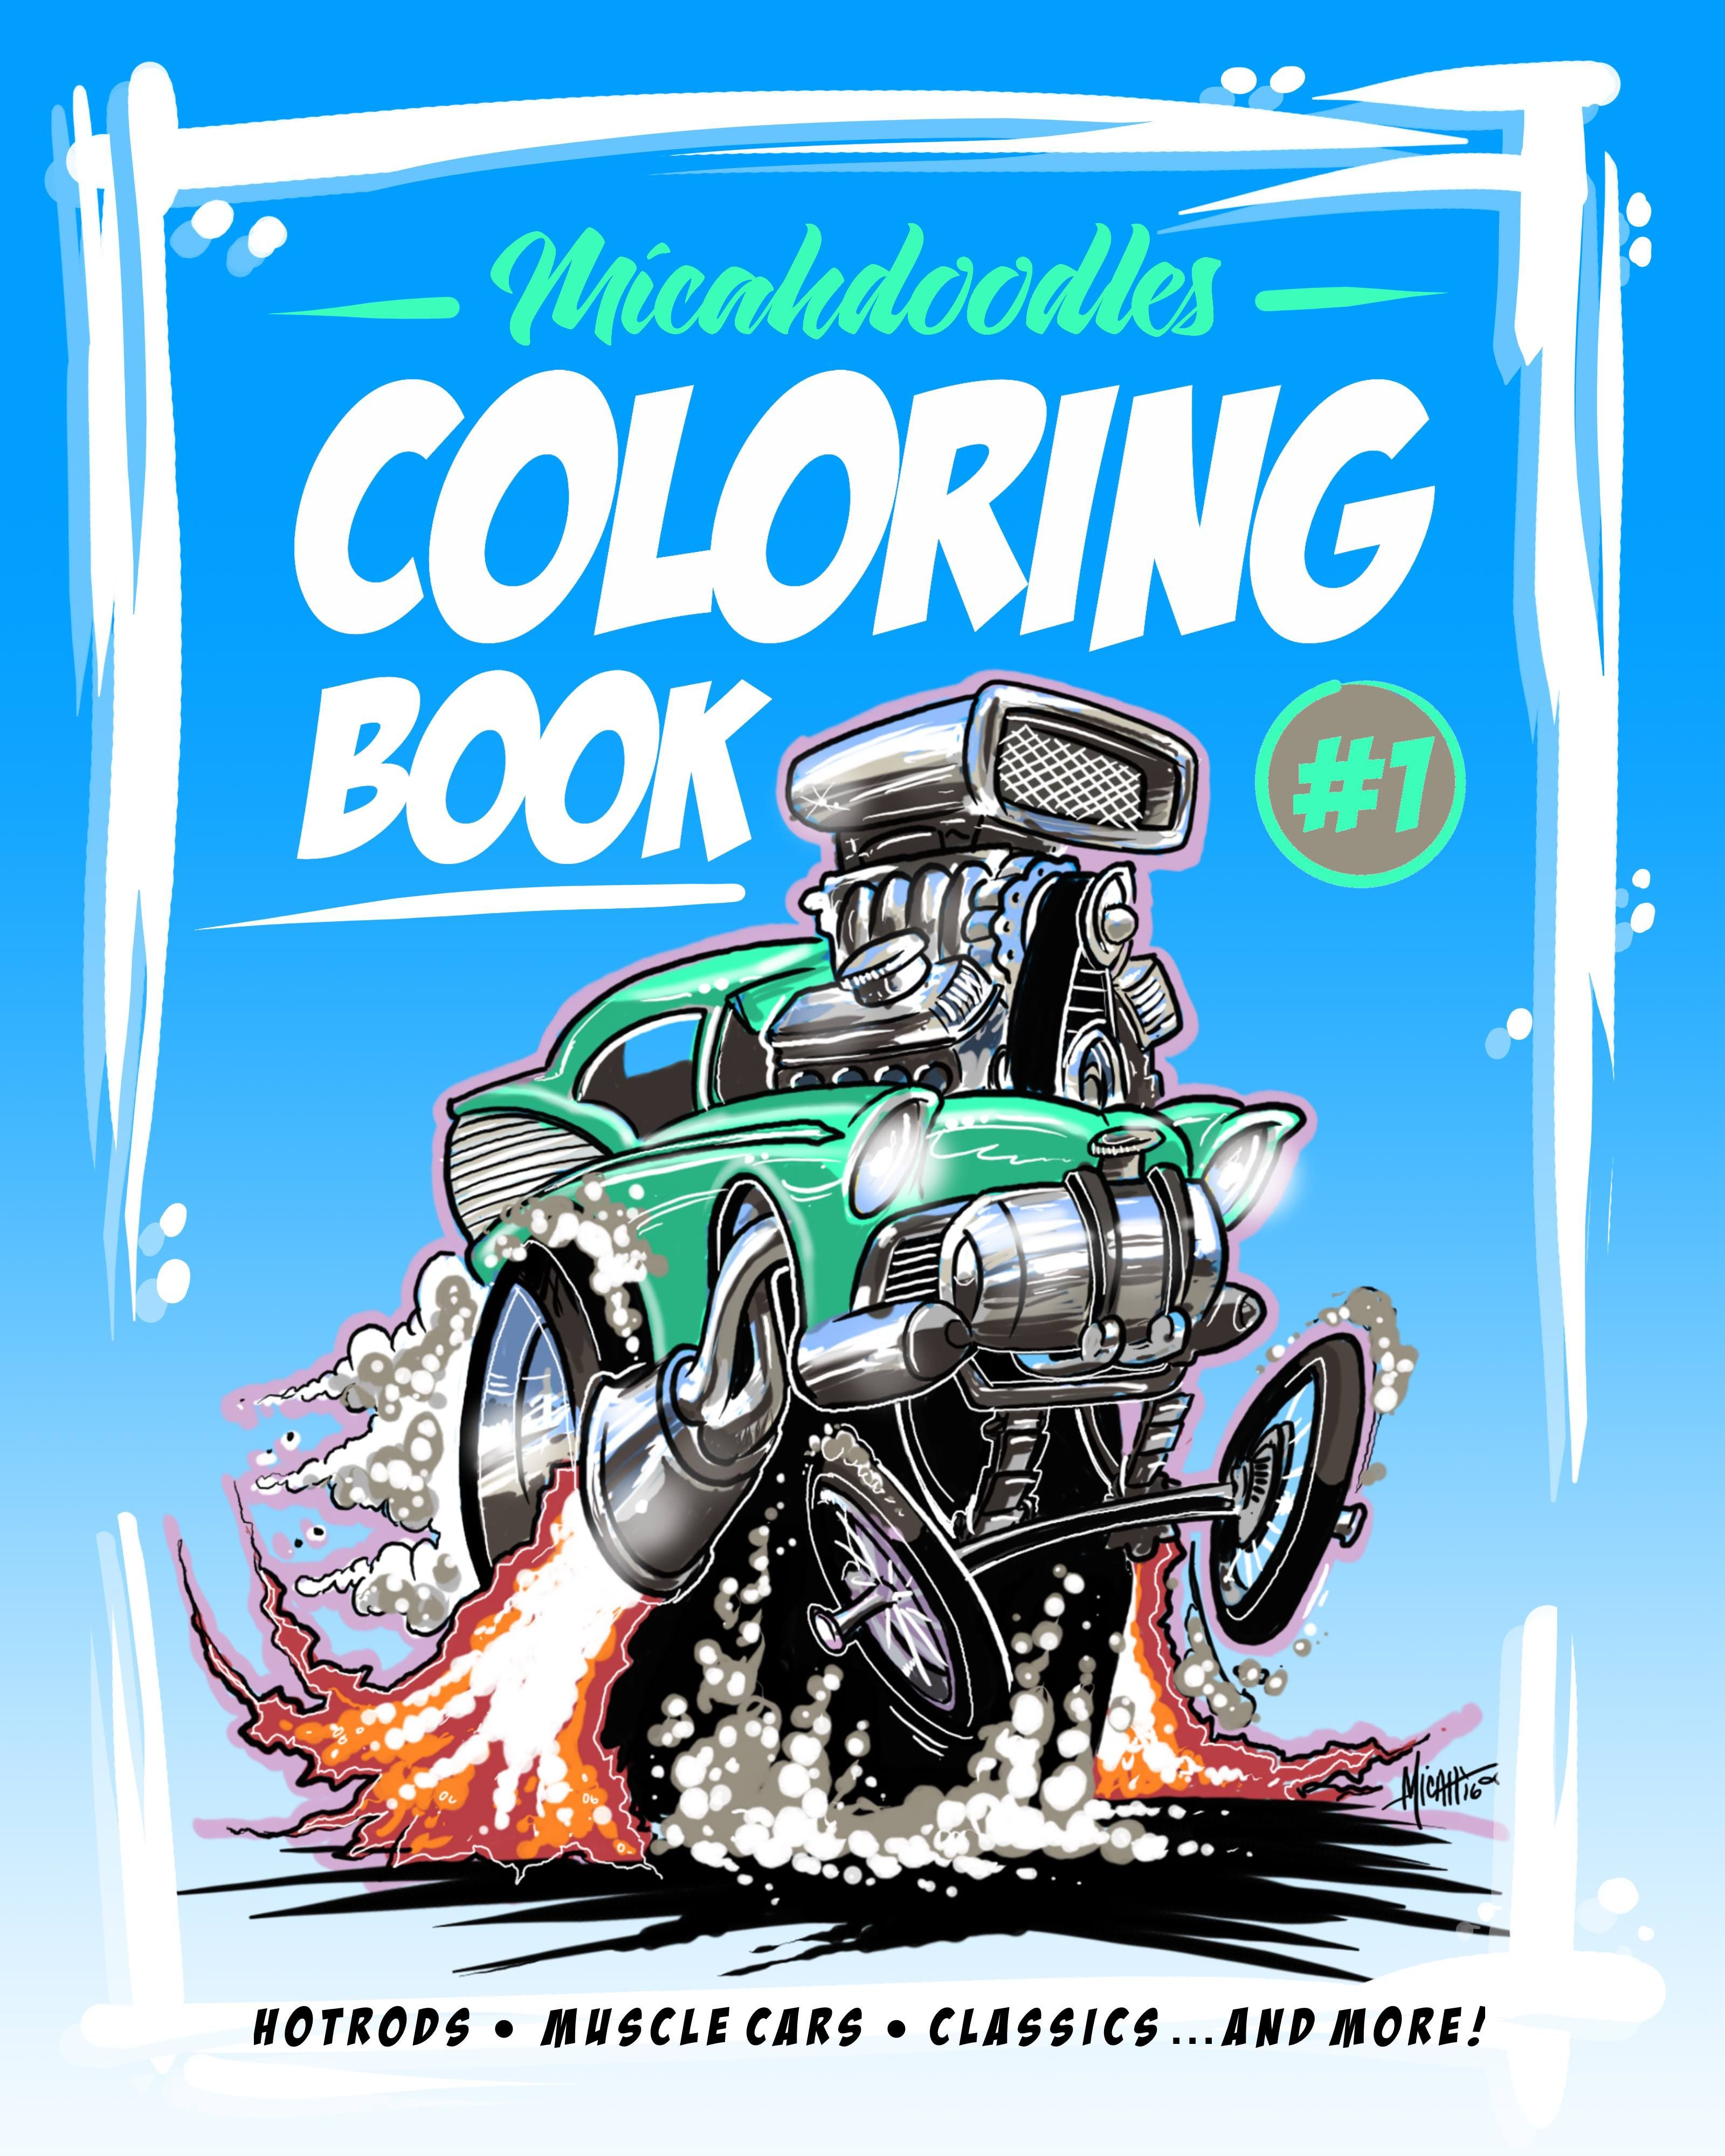 I did this coloring book full of hotrods, muscle cars, classics ...